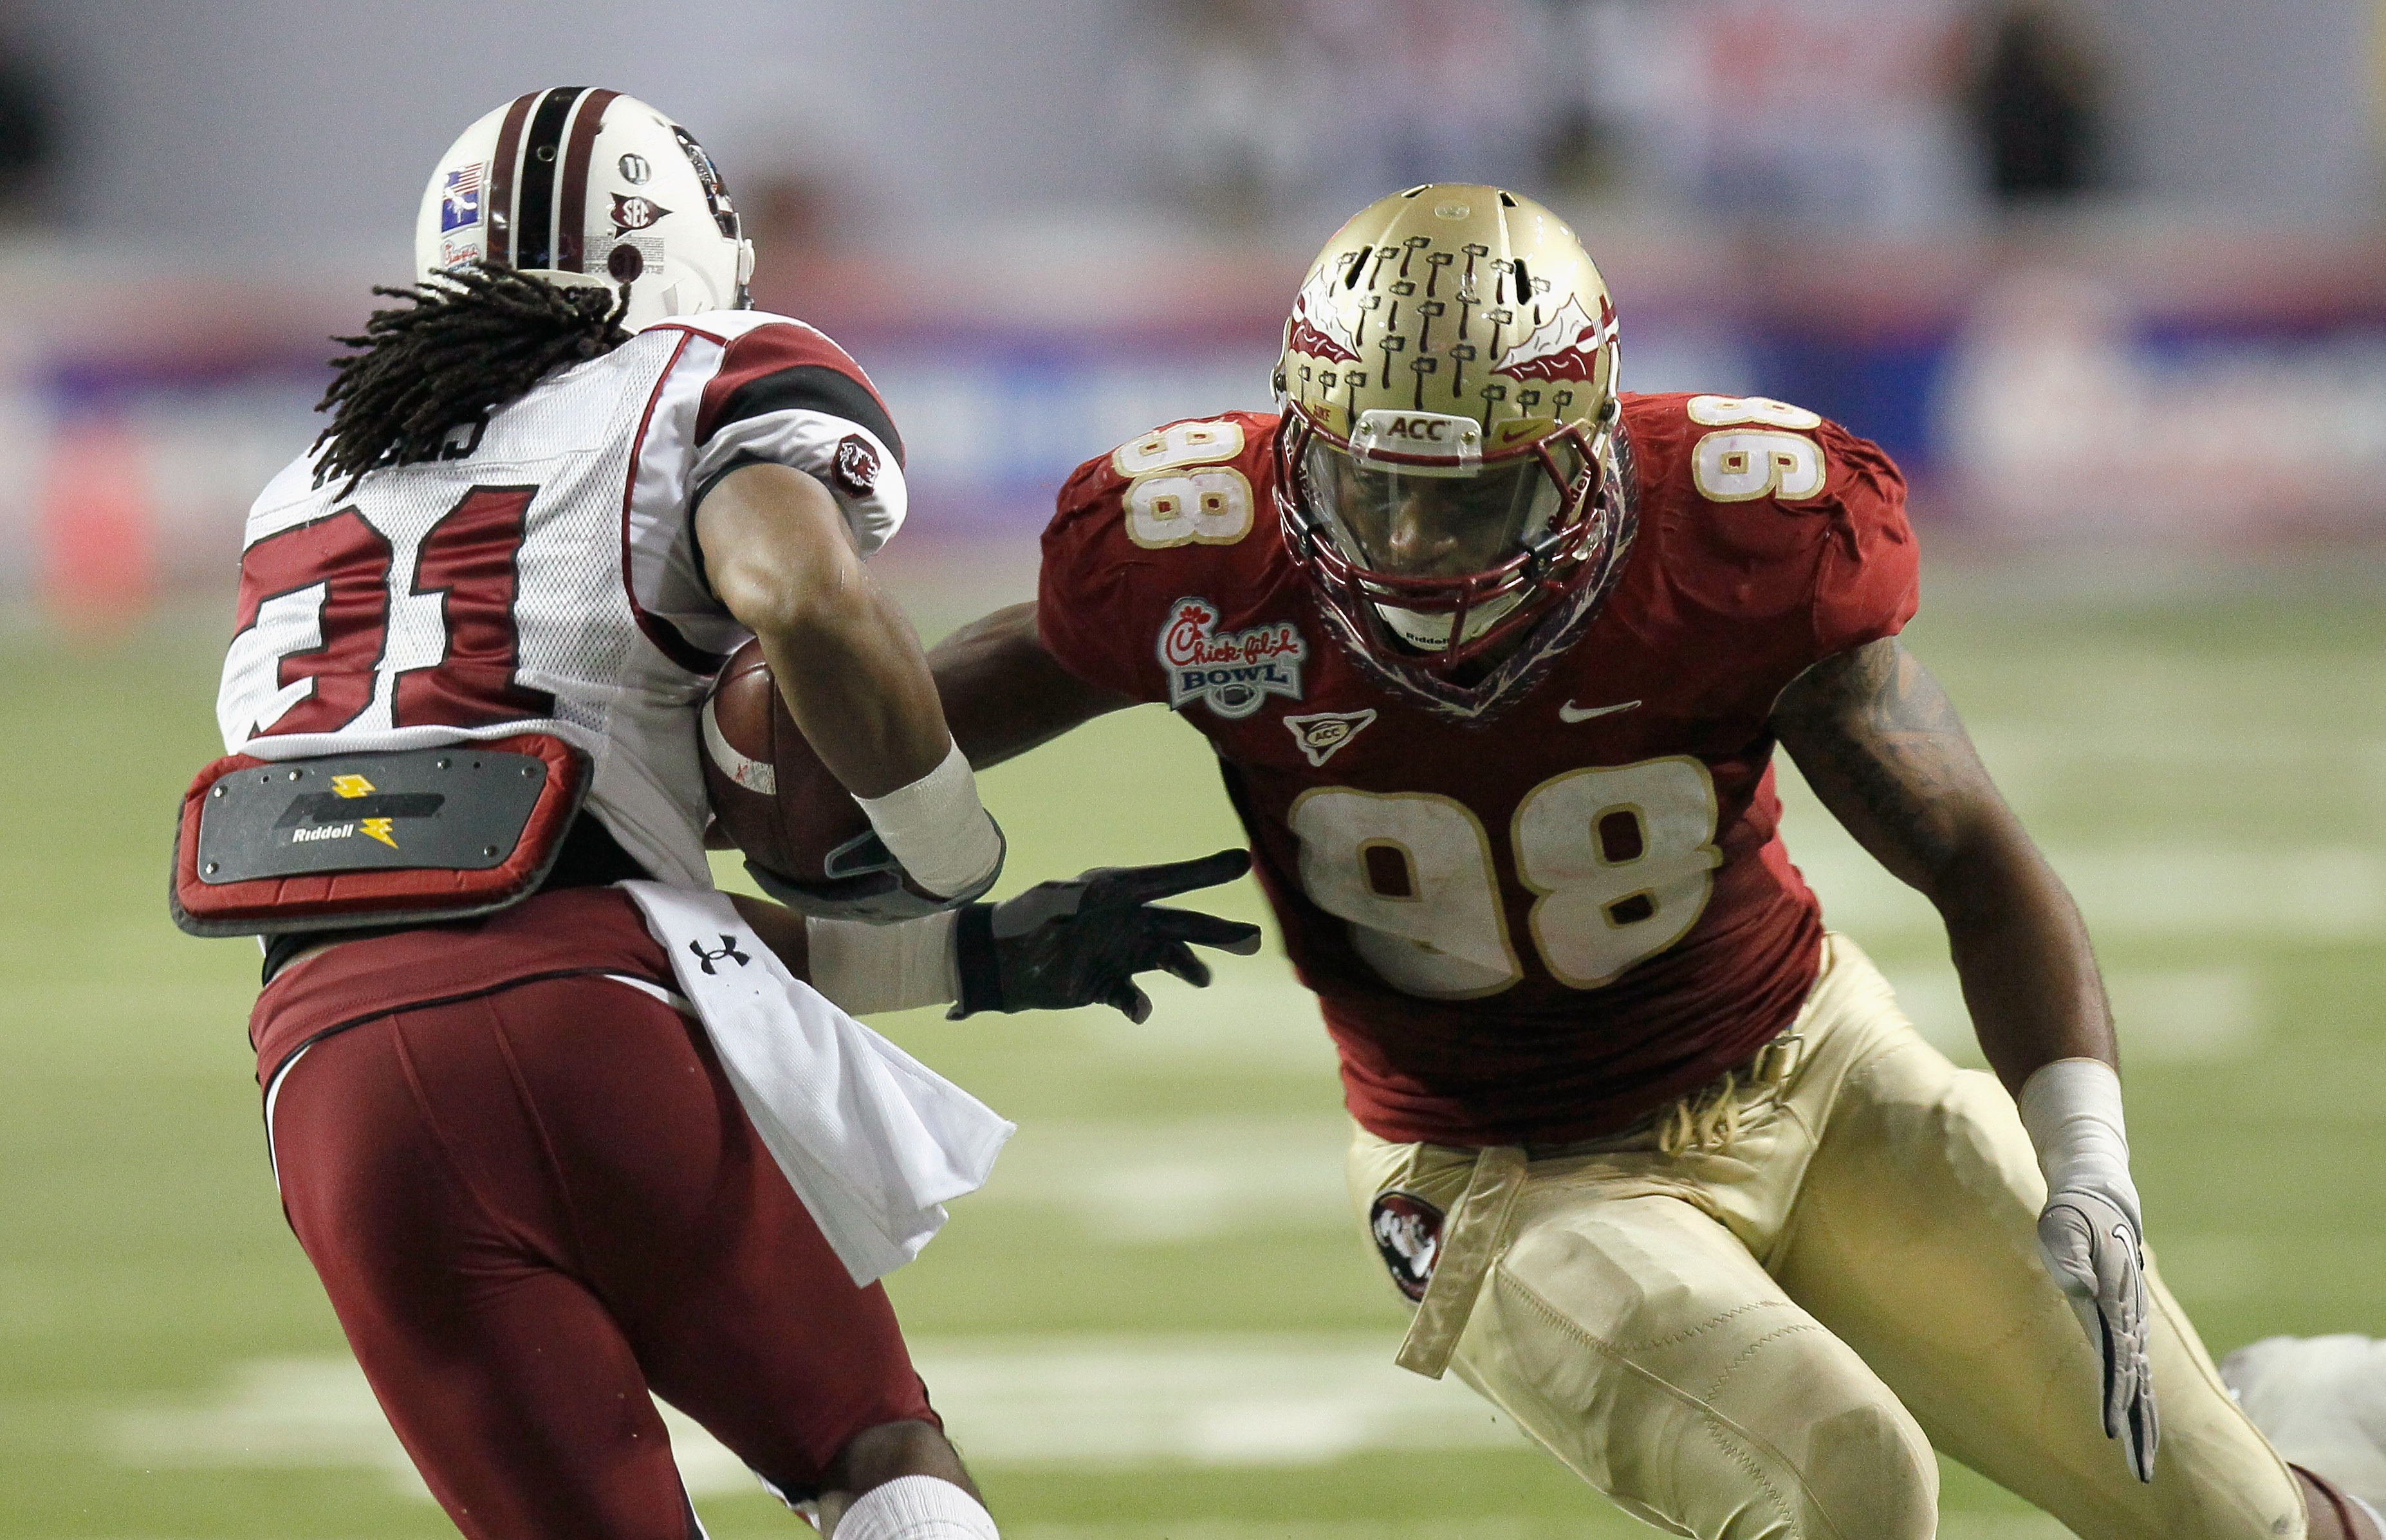 ATLANTA, GA - DECEMBER 31:  Markus White #98 of the Florida State Seminoles against the South Carolina Gamecocks during the 2010 Chick-fil-A Bowl at Georgia Dome on December 31, 2010 in Atlanta, Georgia.  (Photo by Kevin C. Cox/Getty Images)